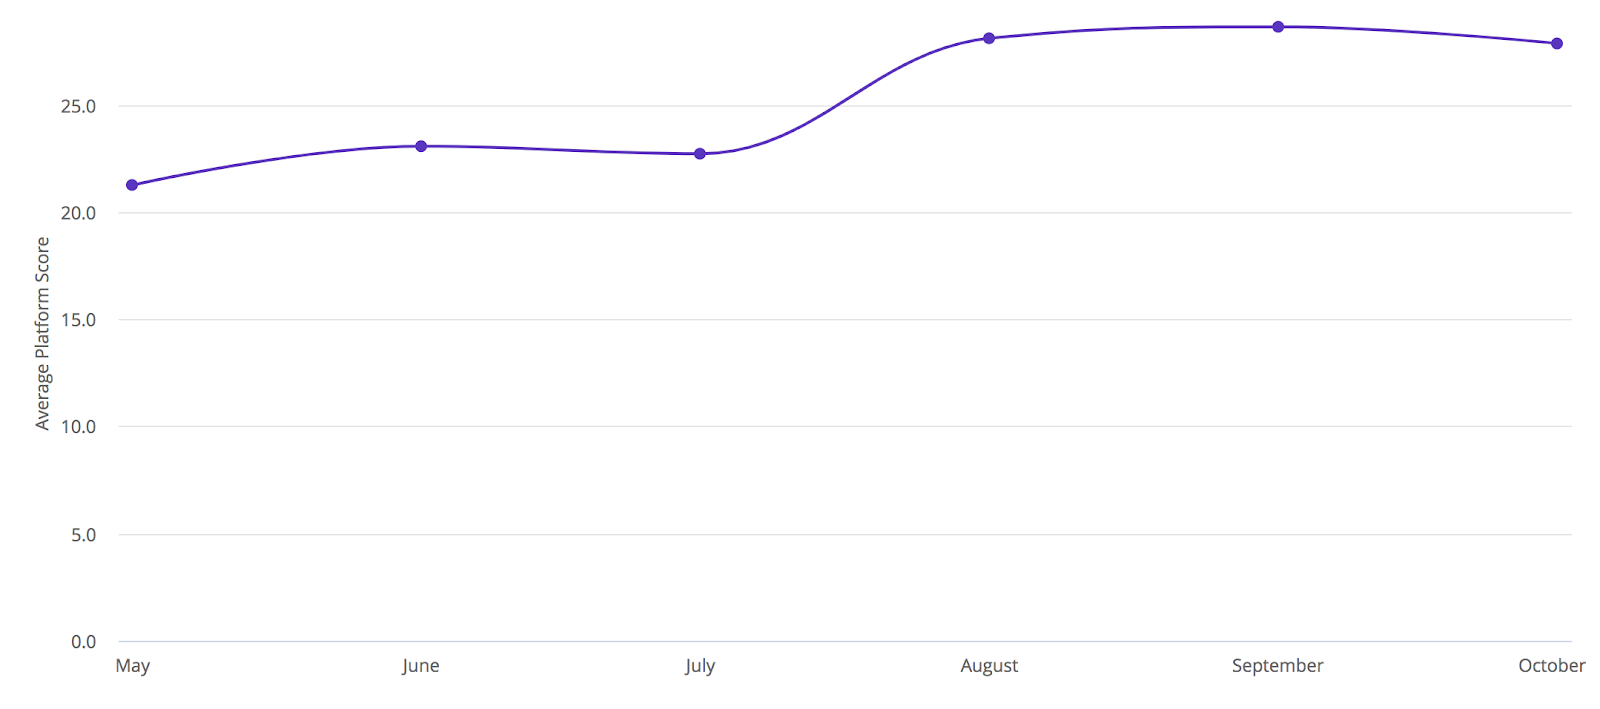 Score Chart showing average platform score growing from May to October